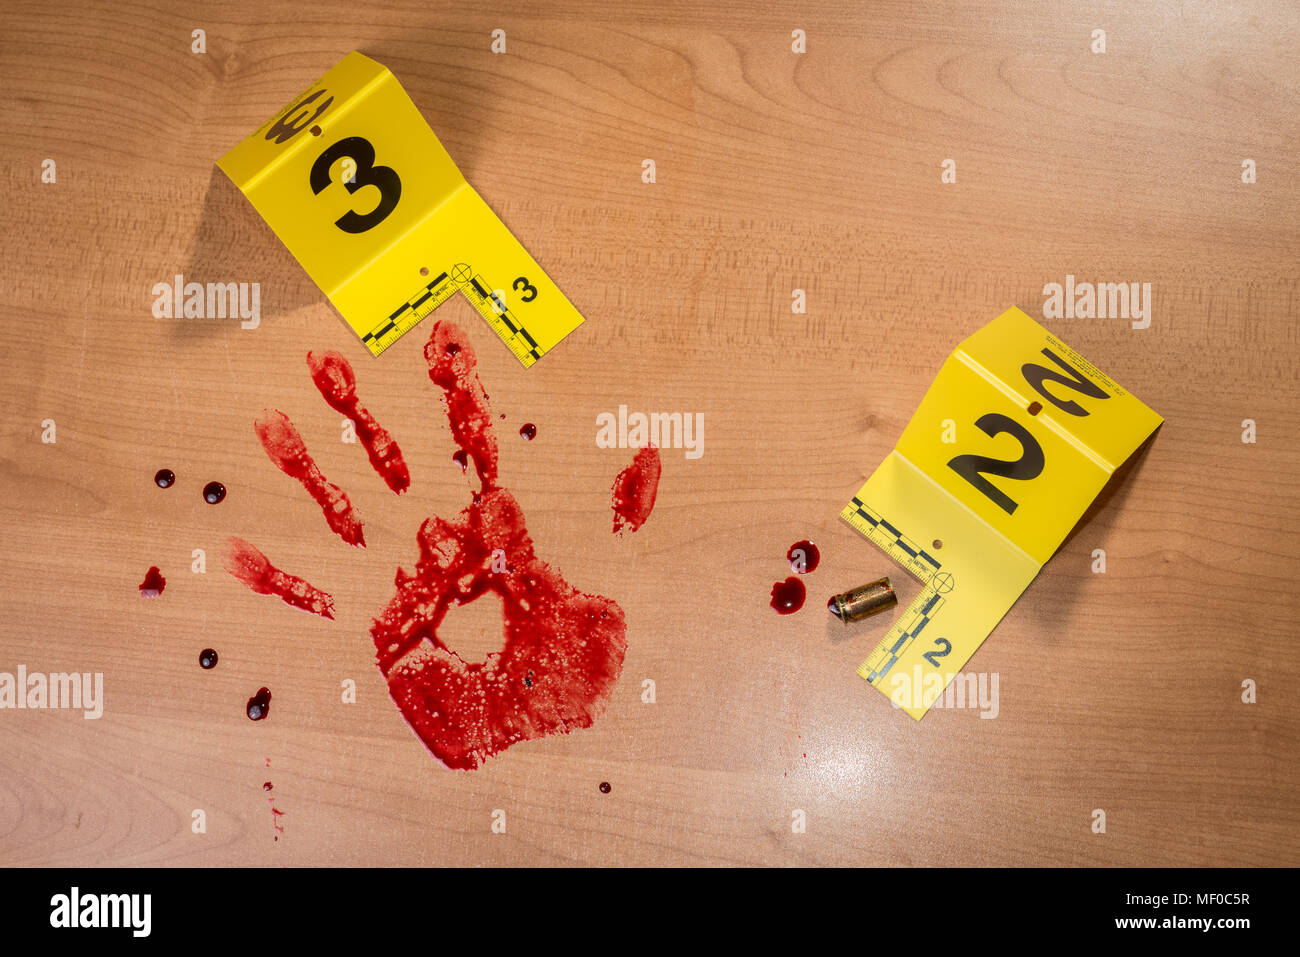 A bloody handprint beside an expended shell casing, both marked with crime scene evidence markers. - Stock Image